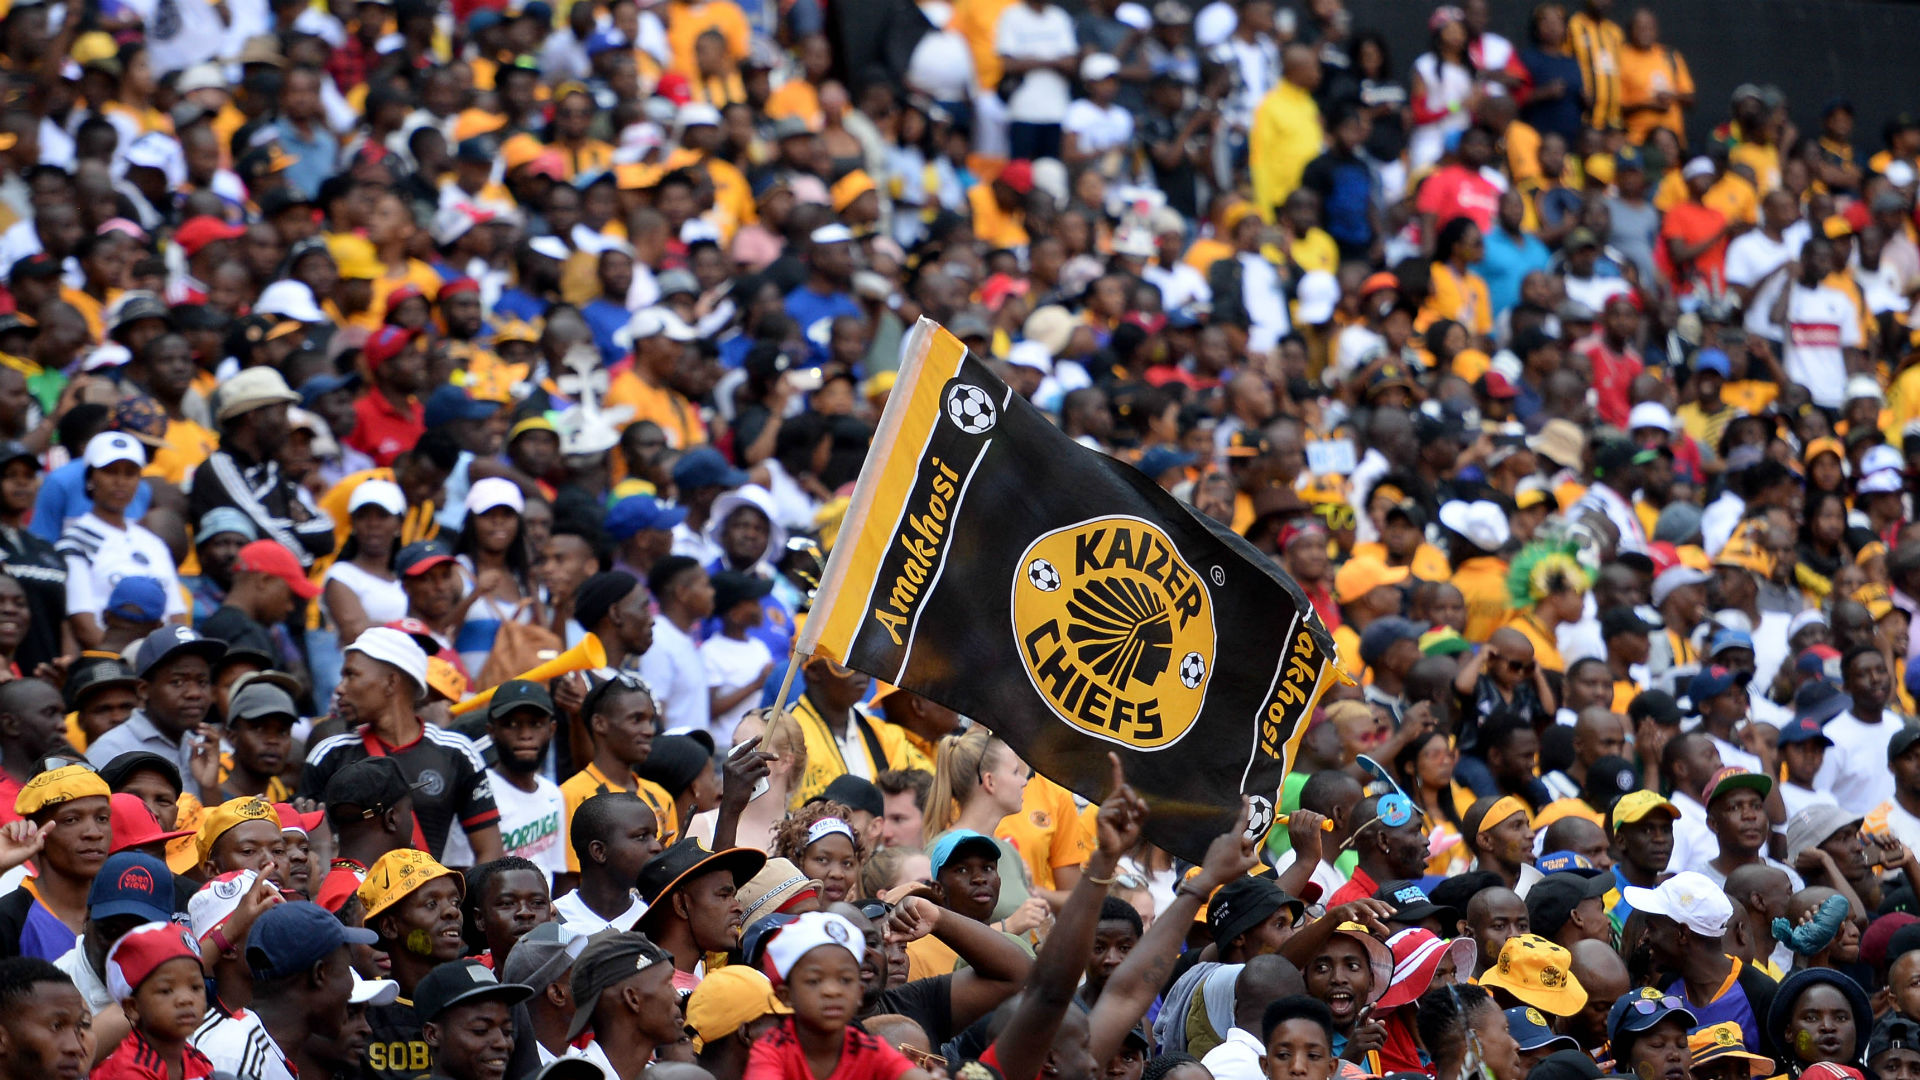 How the 'social media silence was sponsored by Kaizer Chiefs'